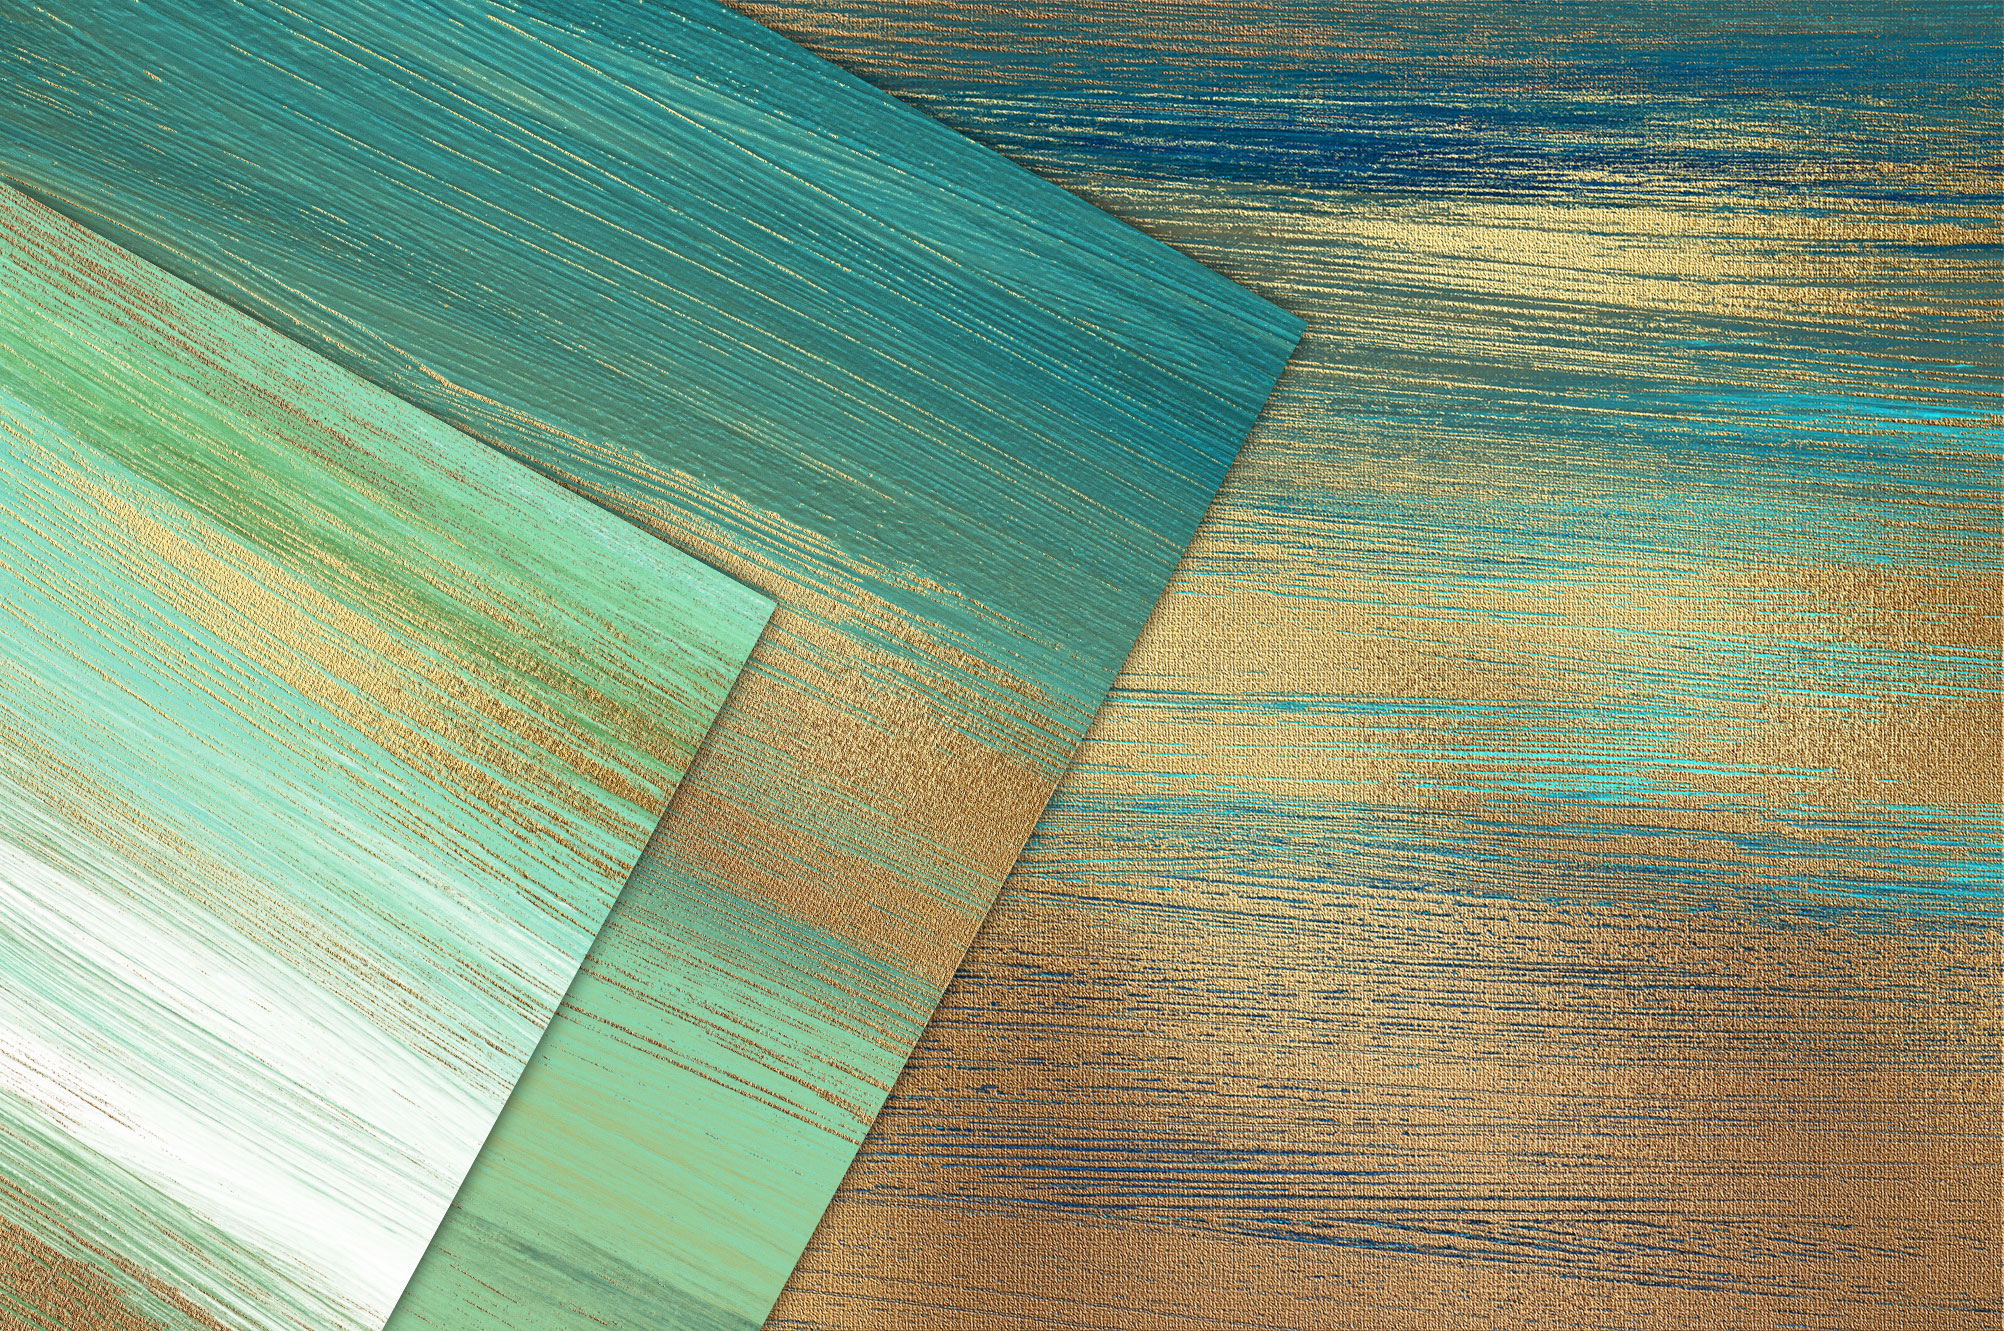 Gold Oil Paint Backgrounds example image 3